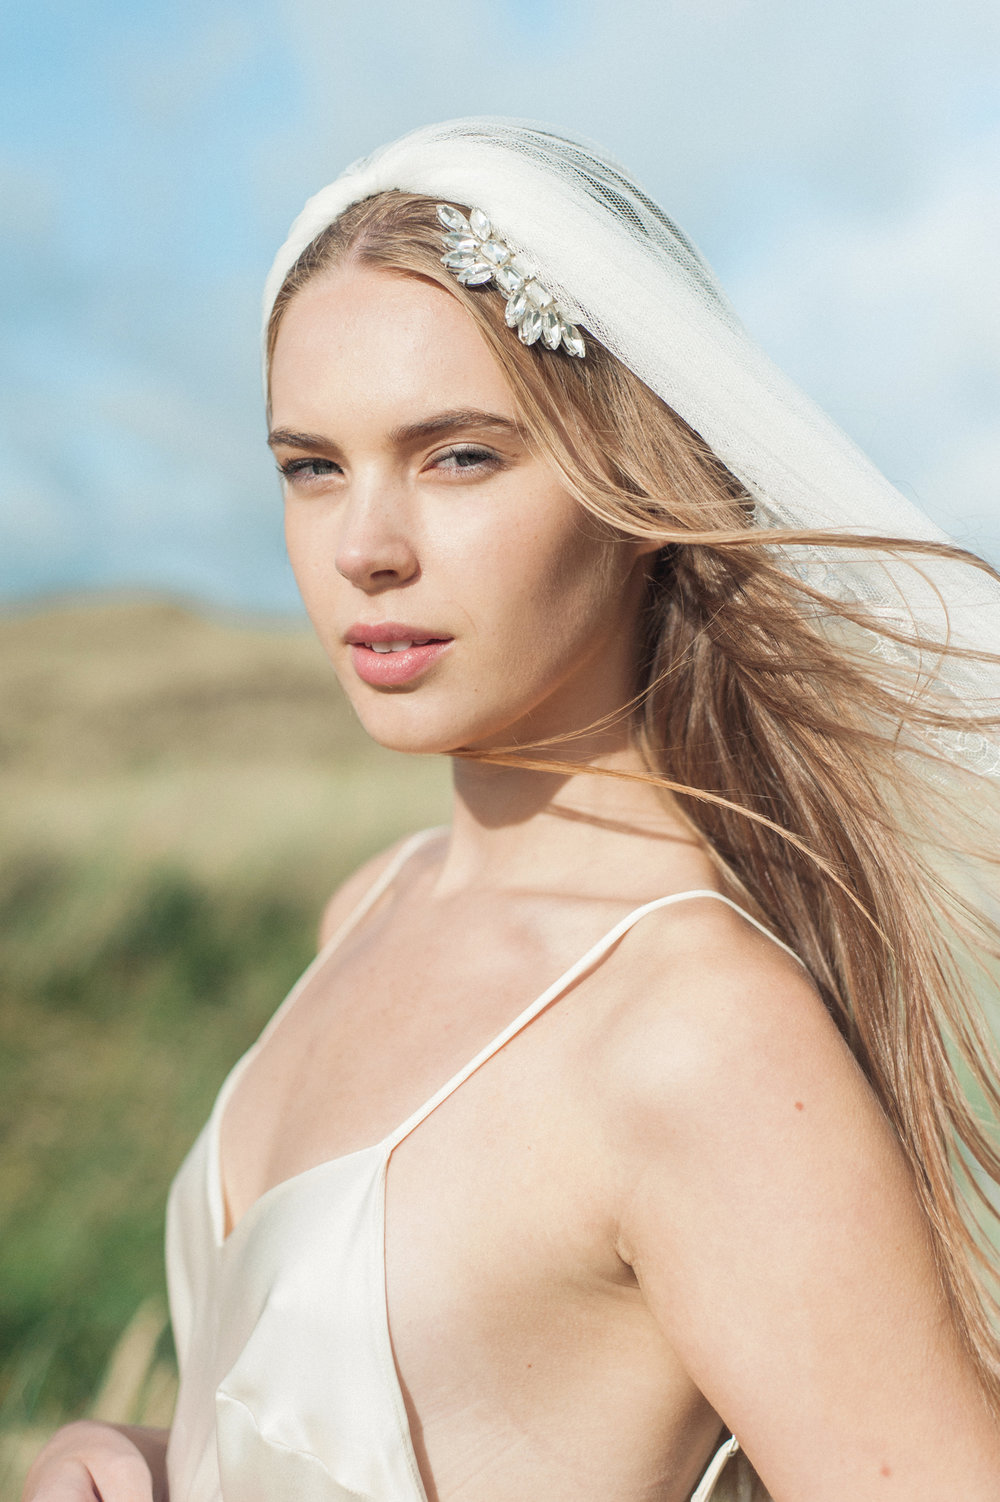 Kate-Beaumont-Wedding-Dresses-Formby-Beach-Emma-Pilkington-10.jpg